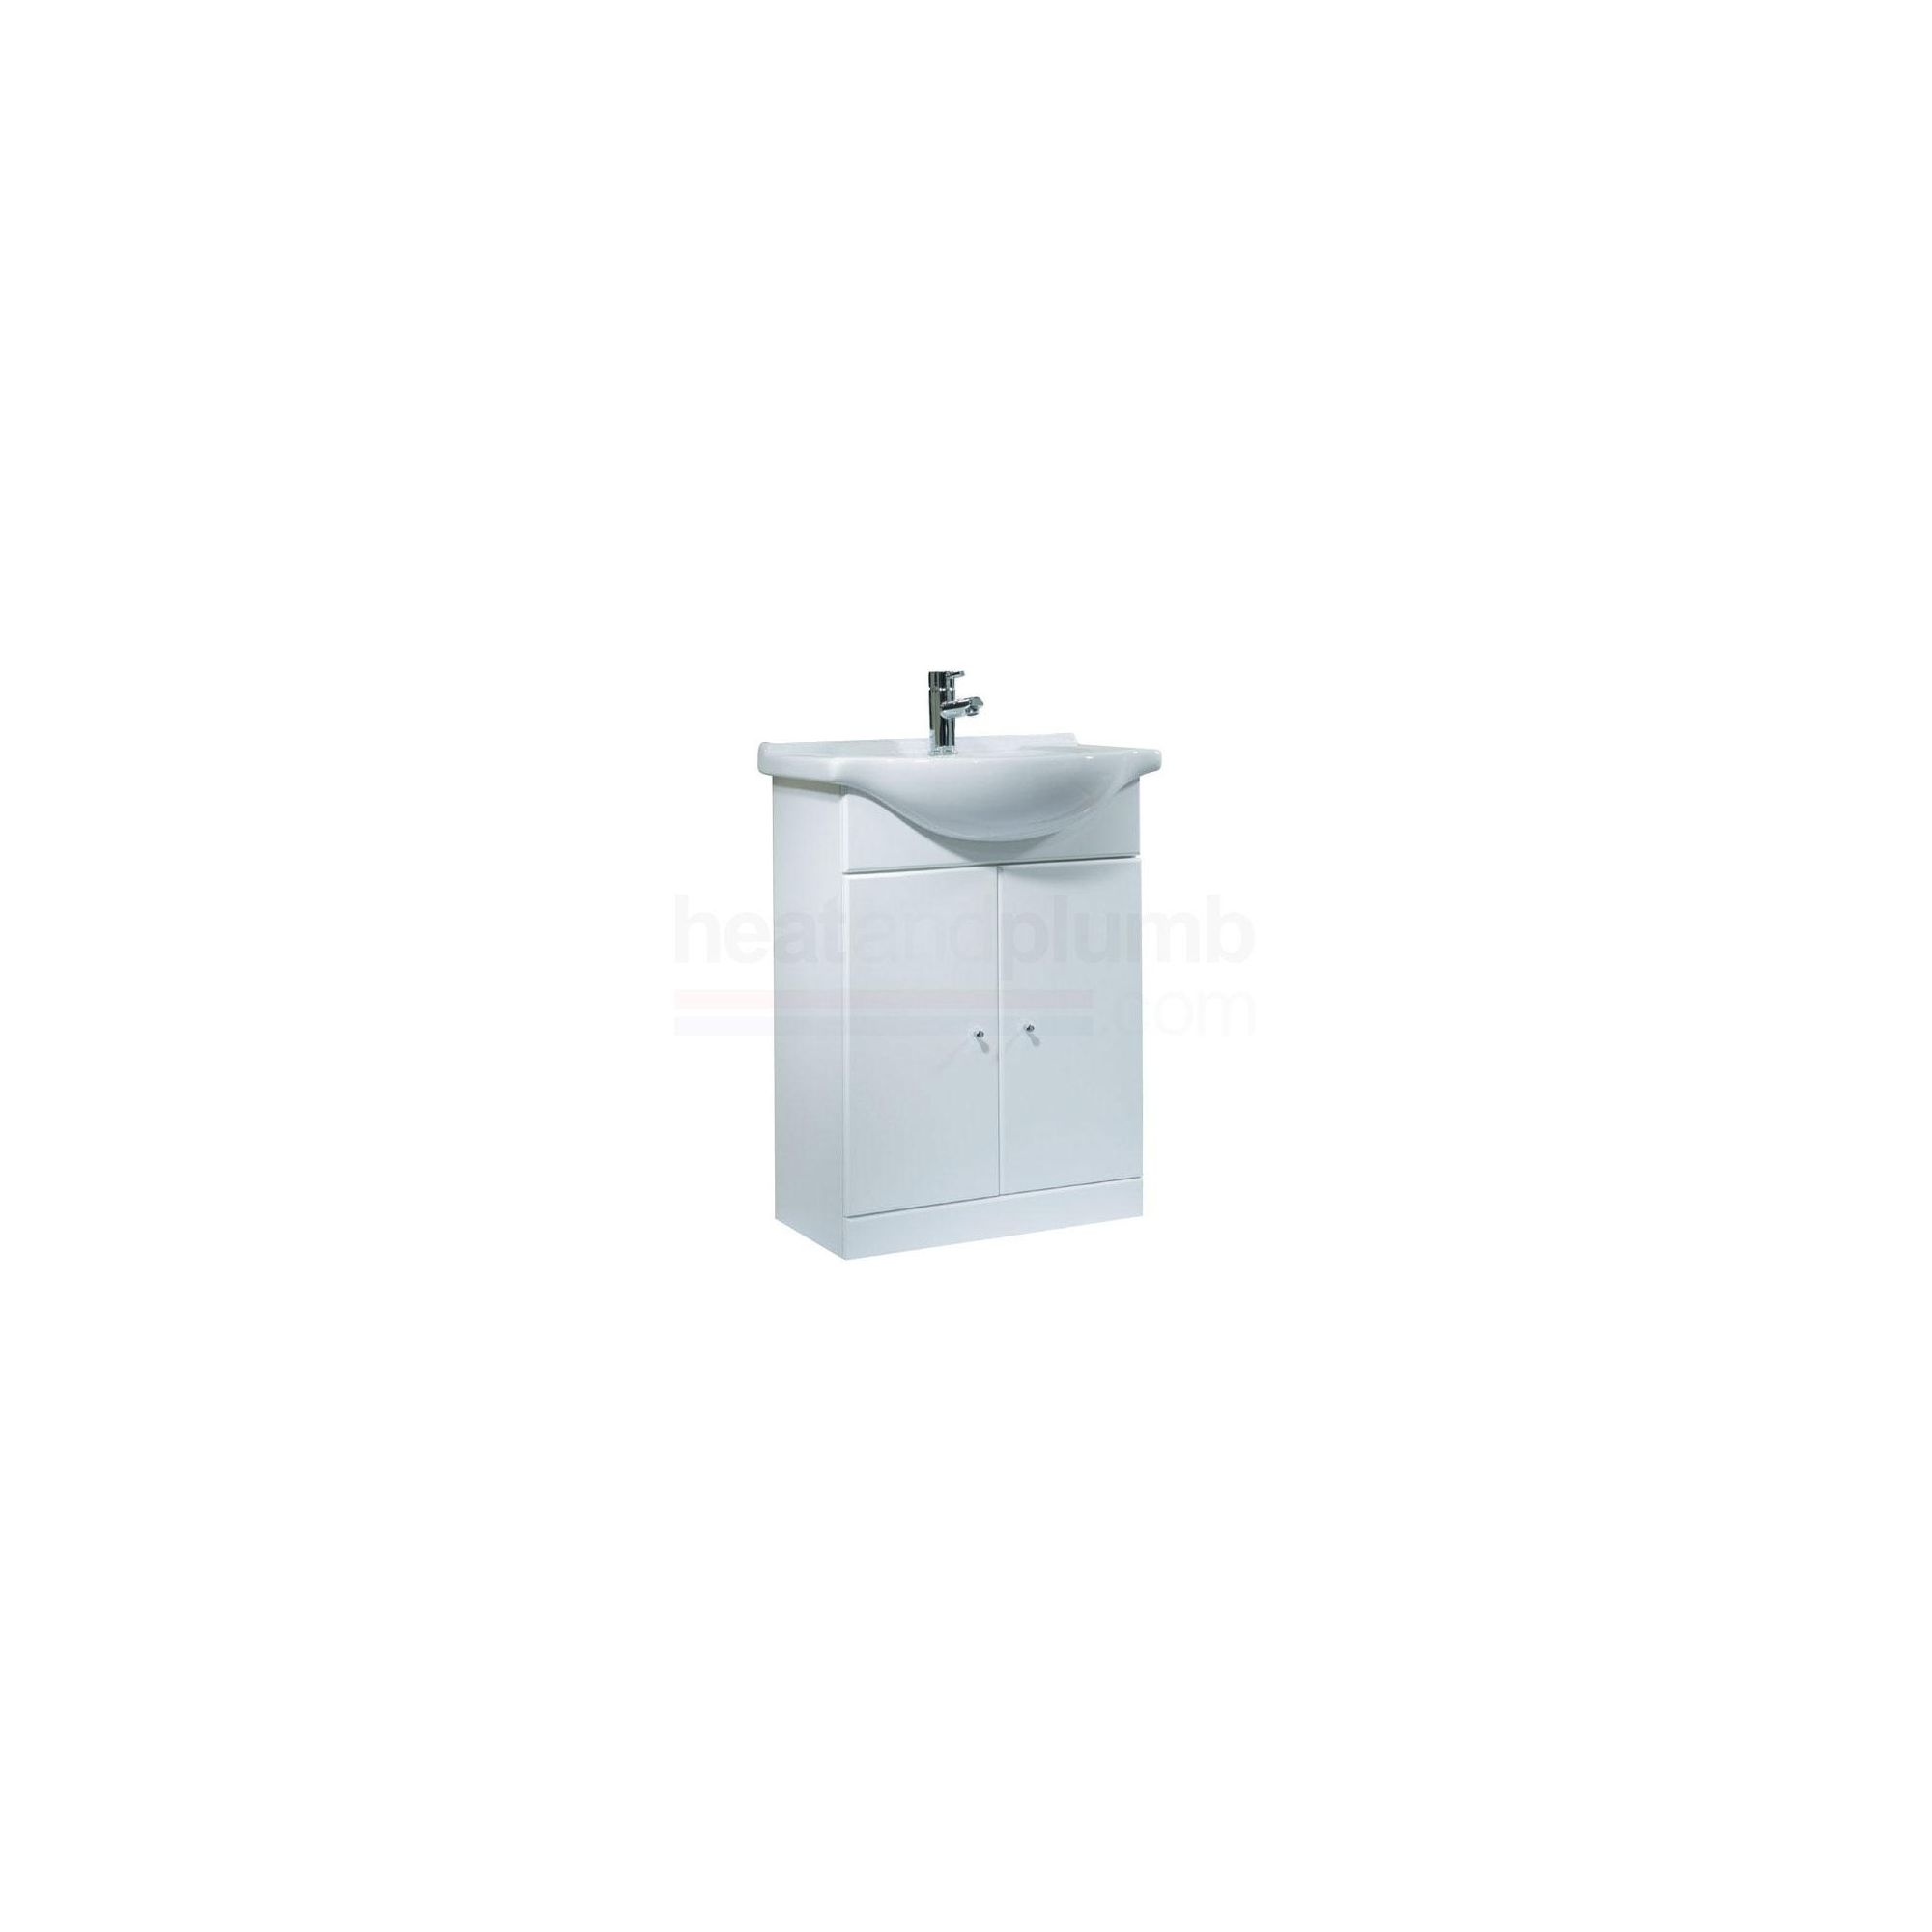 Tavistock Meridian White Twin Door Cabinet and Basin - 1 Tap Hole - 650mm Wide